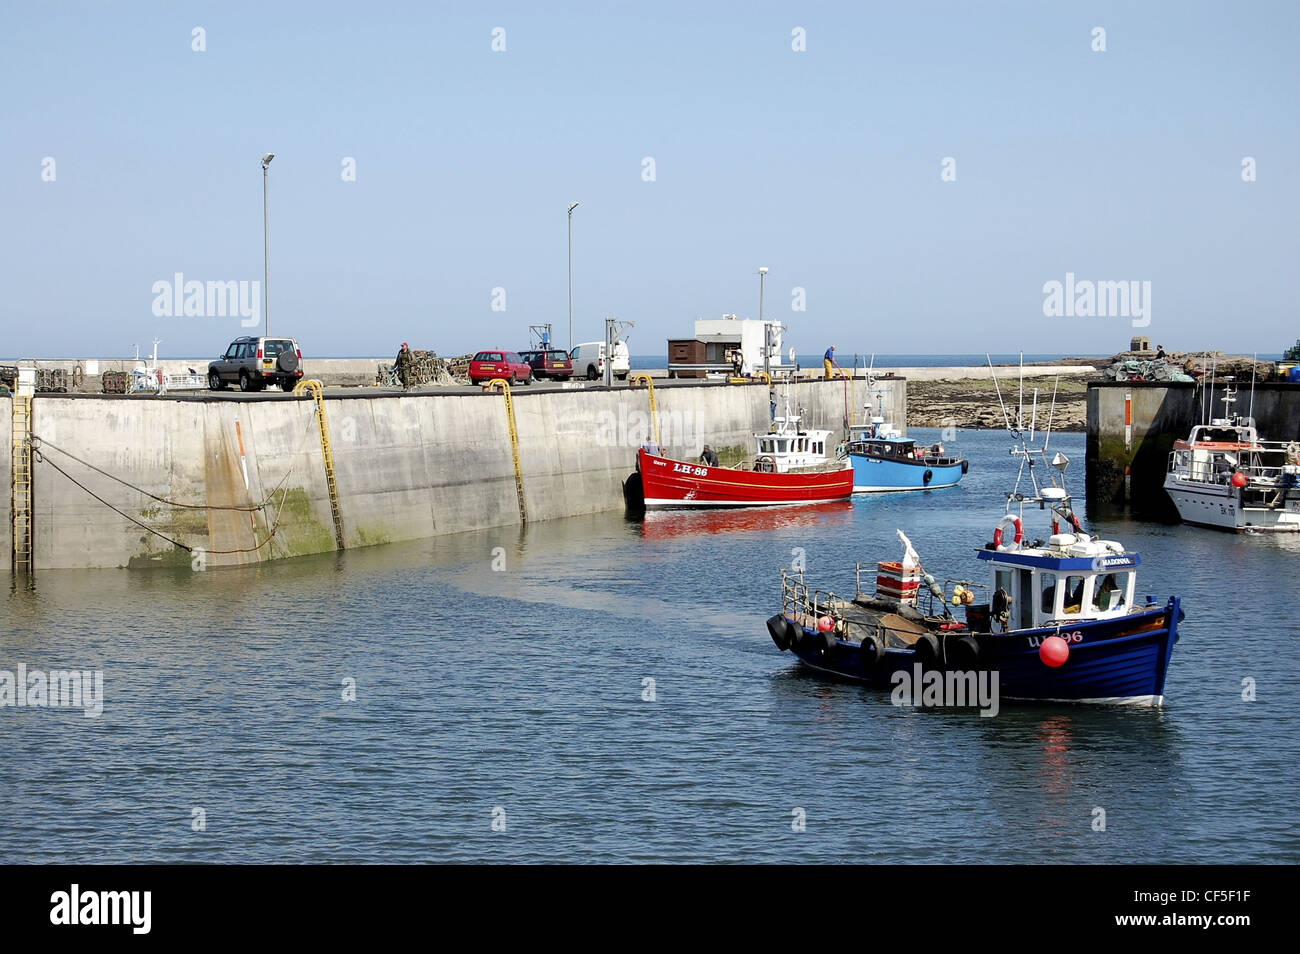 Seahouses Harbour, Northumberland with moored boats and one moving - Stock Image